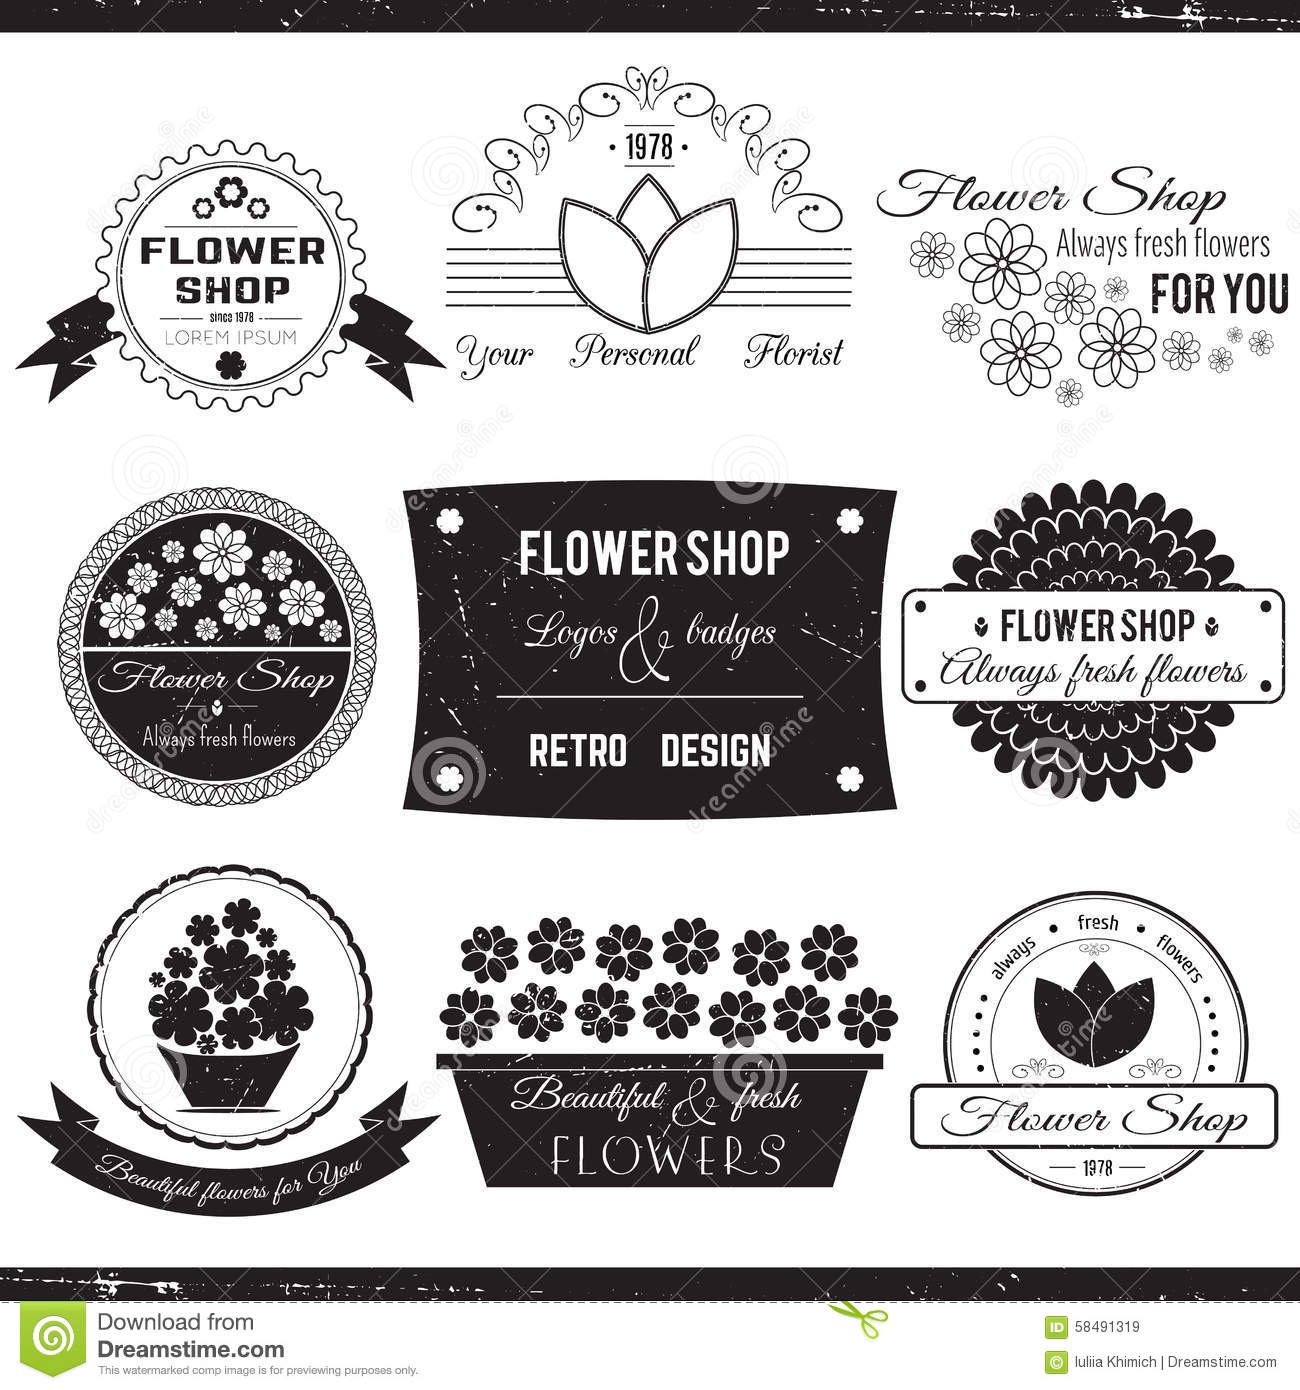 Flower Shop Logos Stock Vector. Image Of Placard, Frame